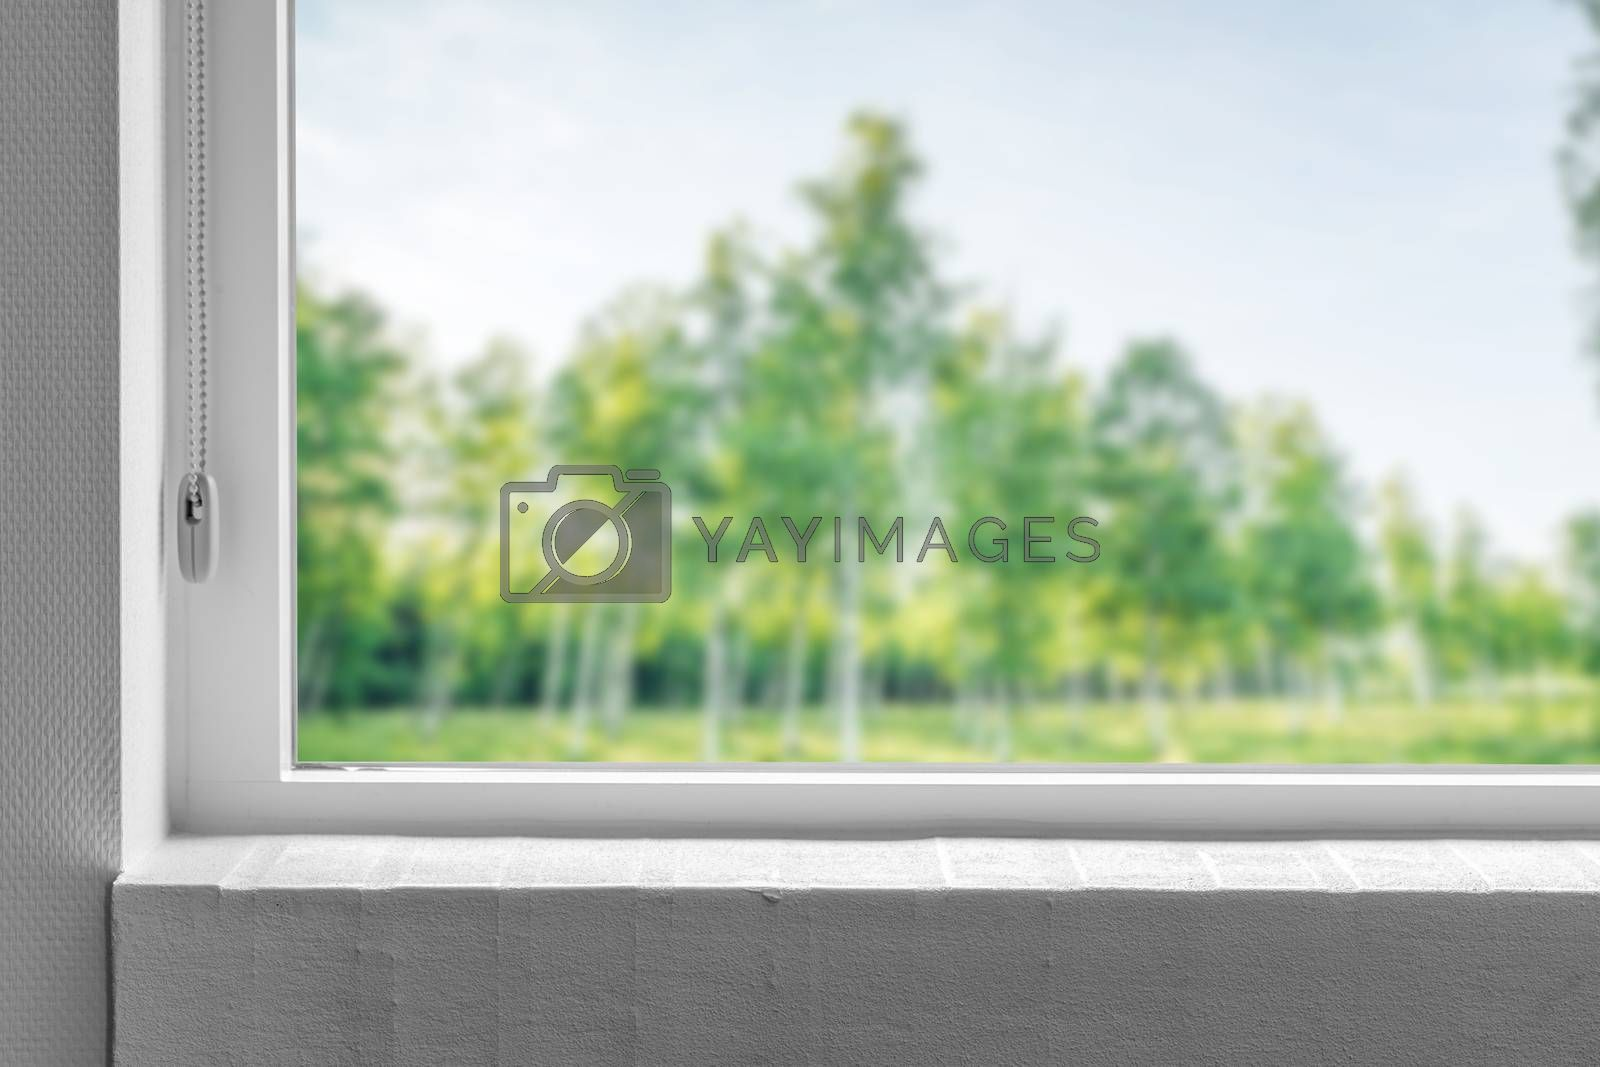 Windowsill with a view to a green garden with trees in the spring